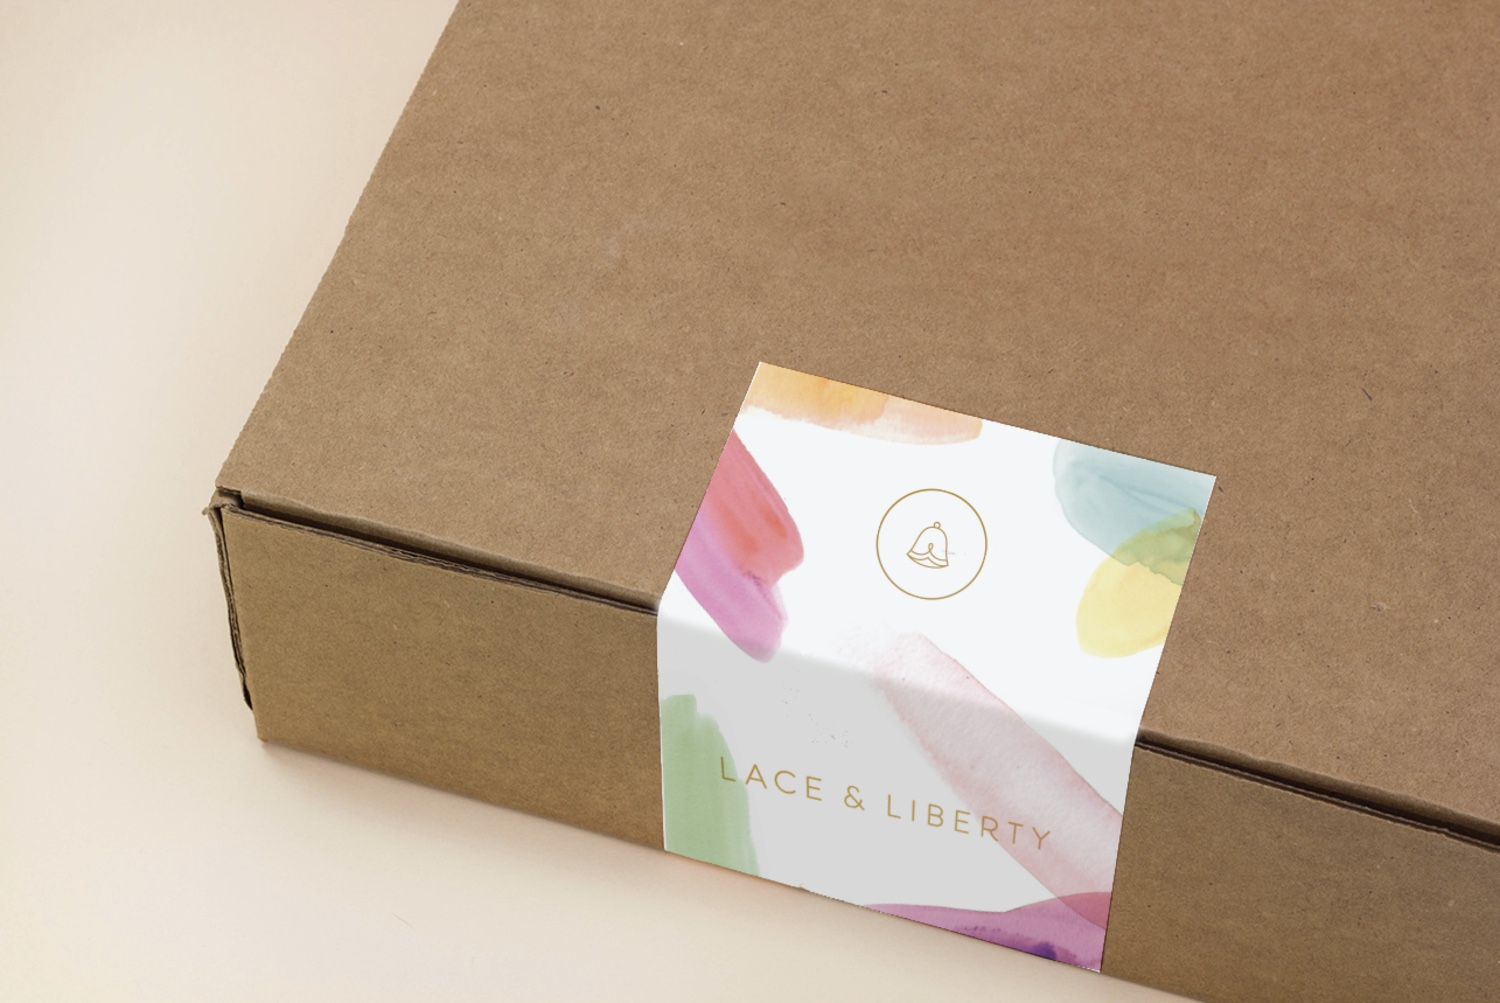 A sticker dresses up a plain brown box.